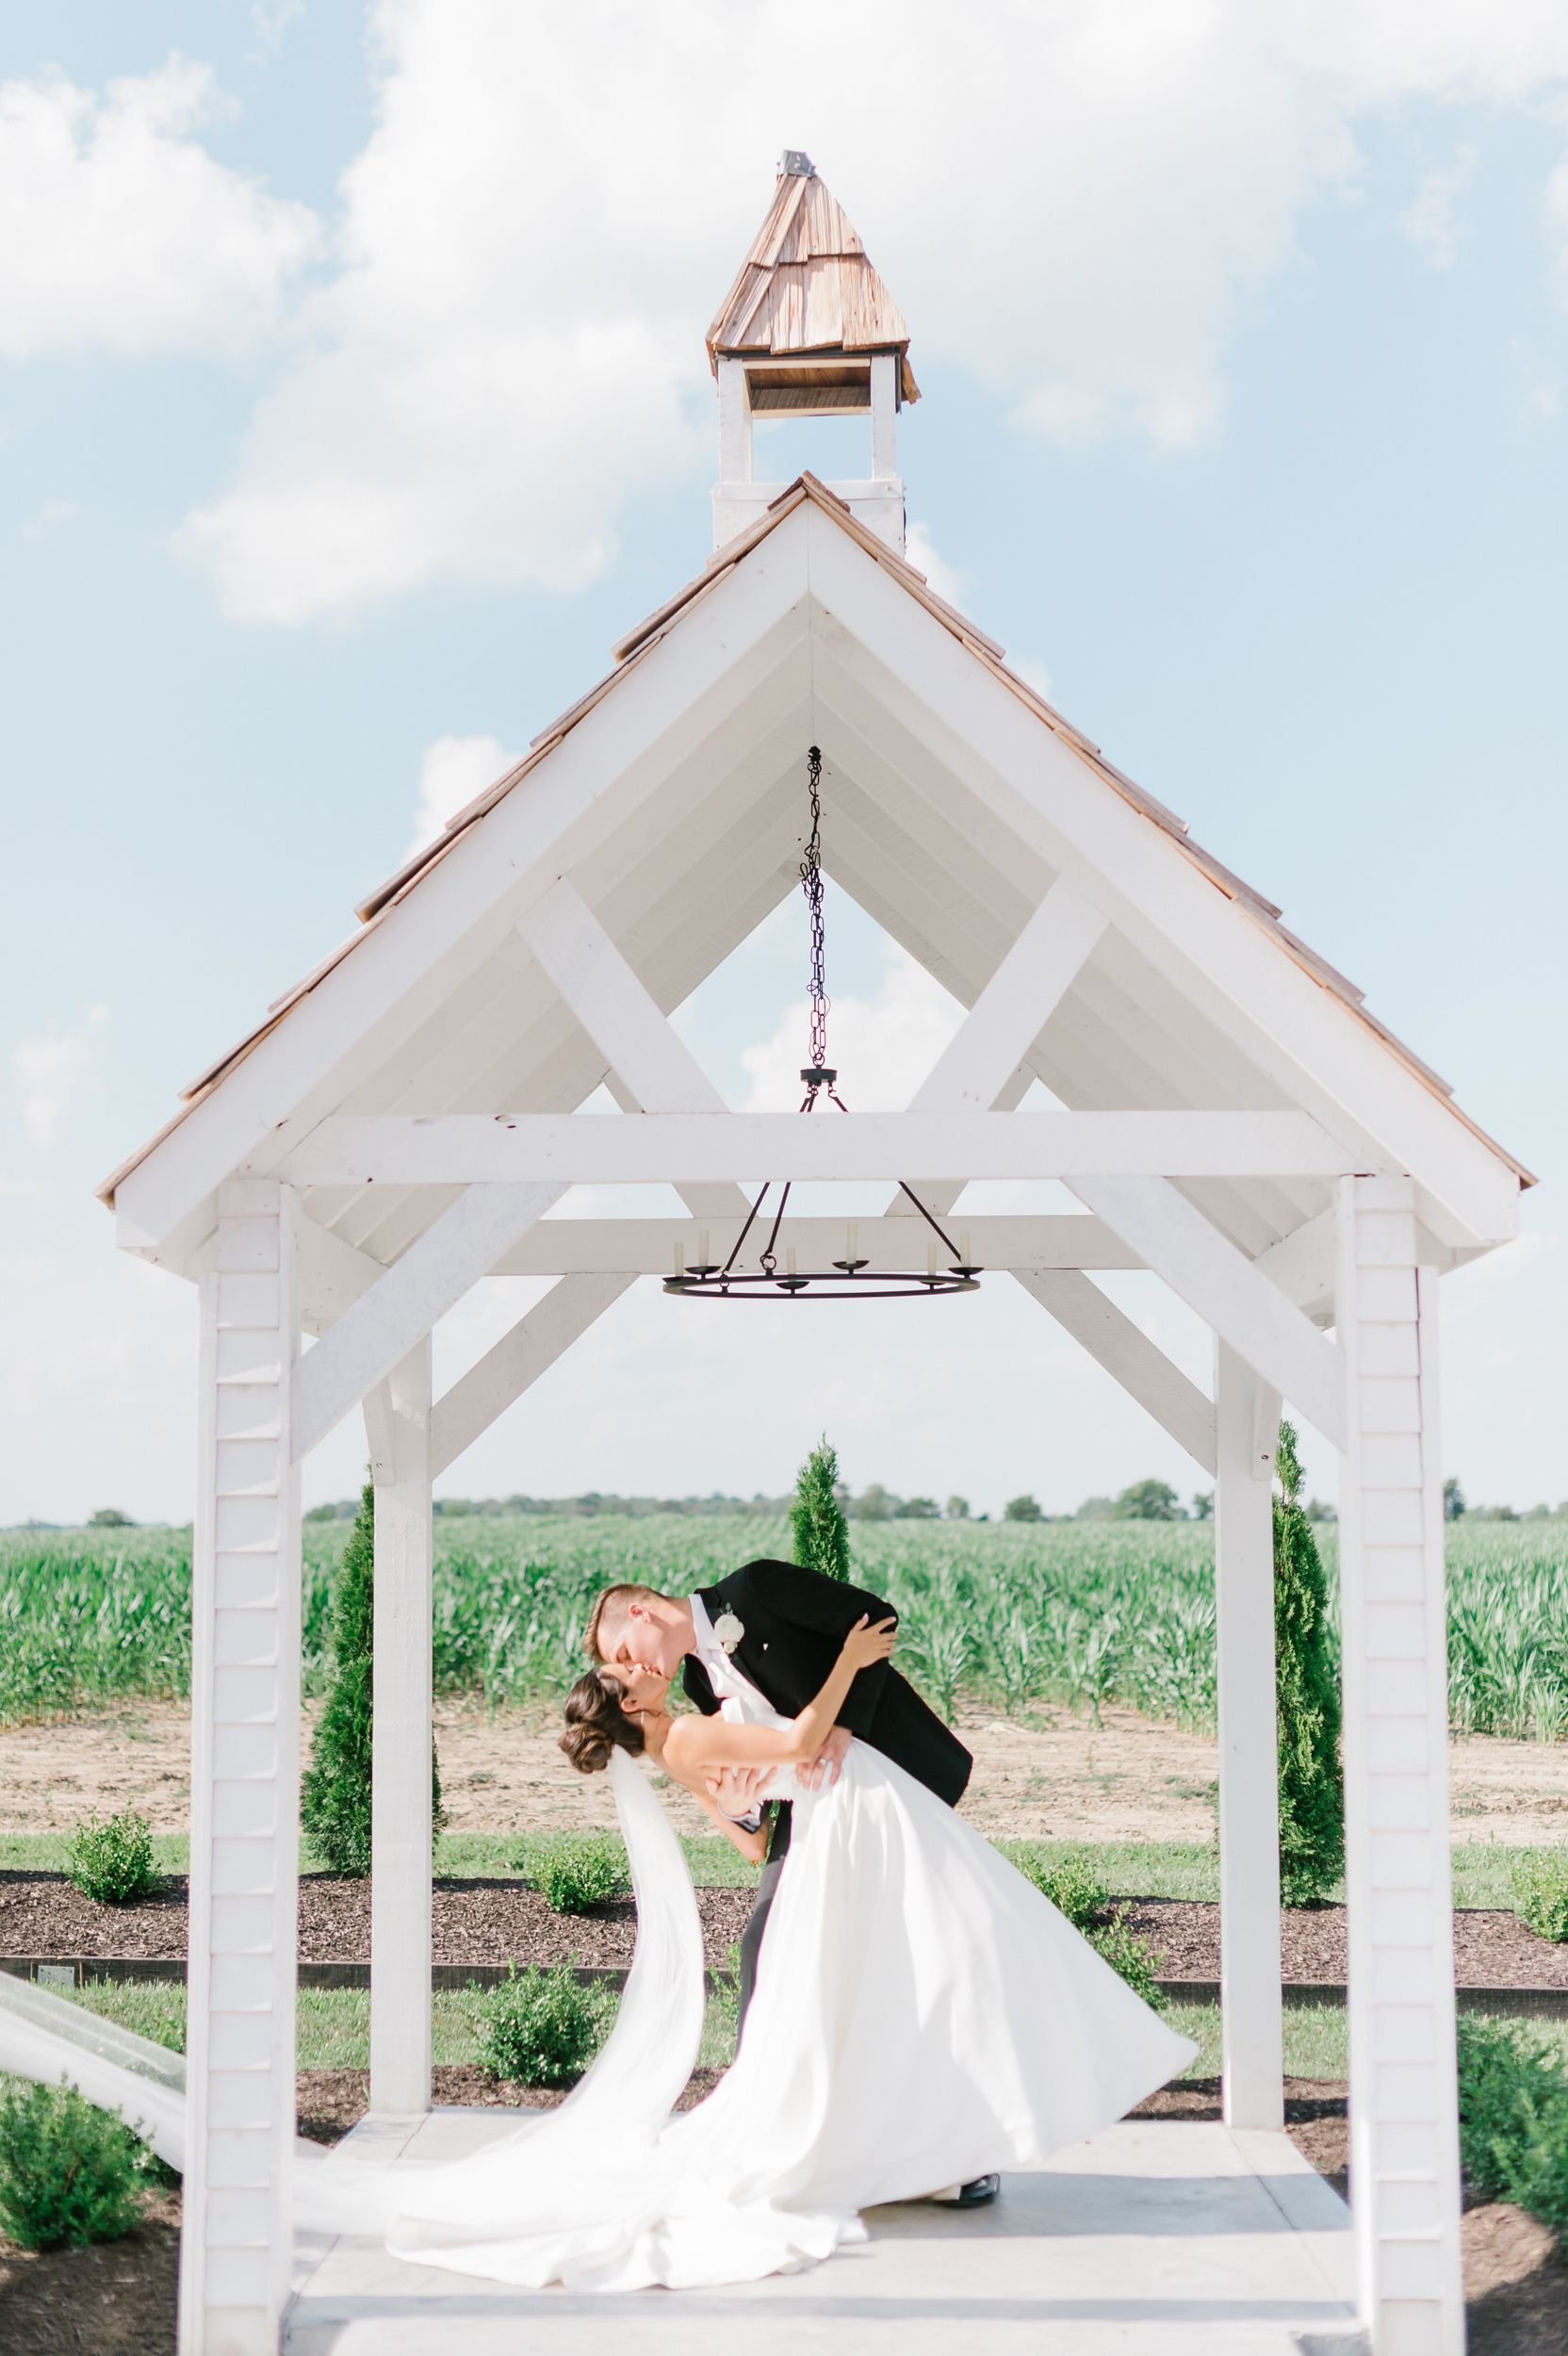 Photo of Chapelle de mariage moderne en plein air blanc